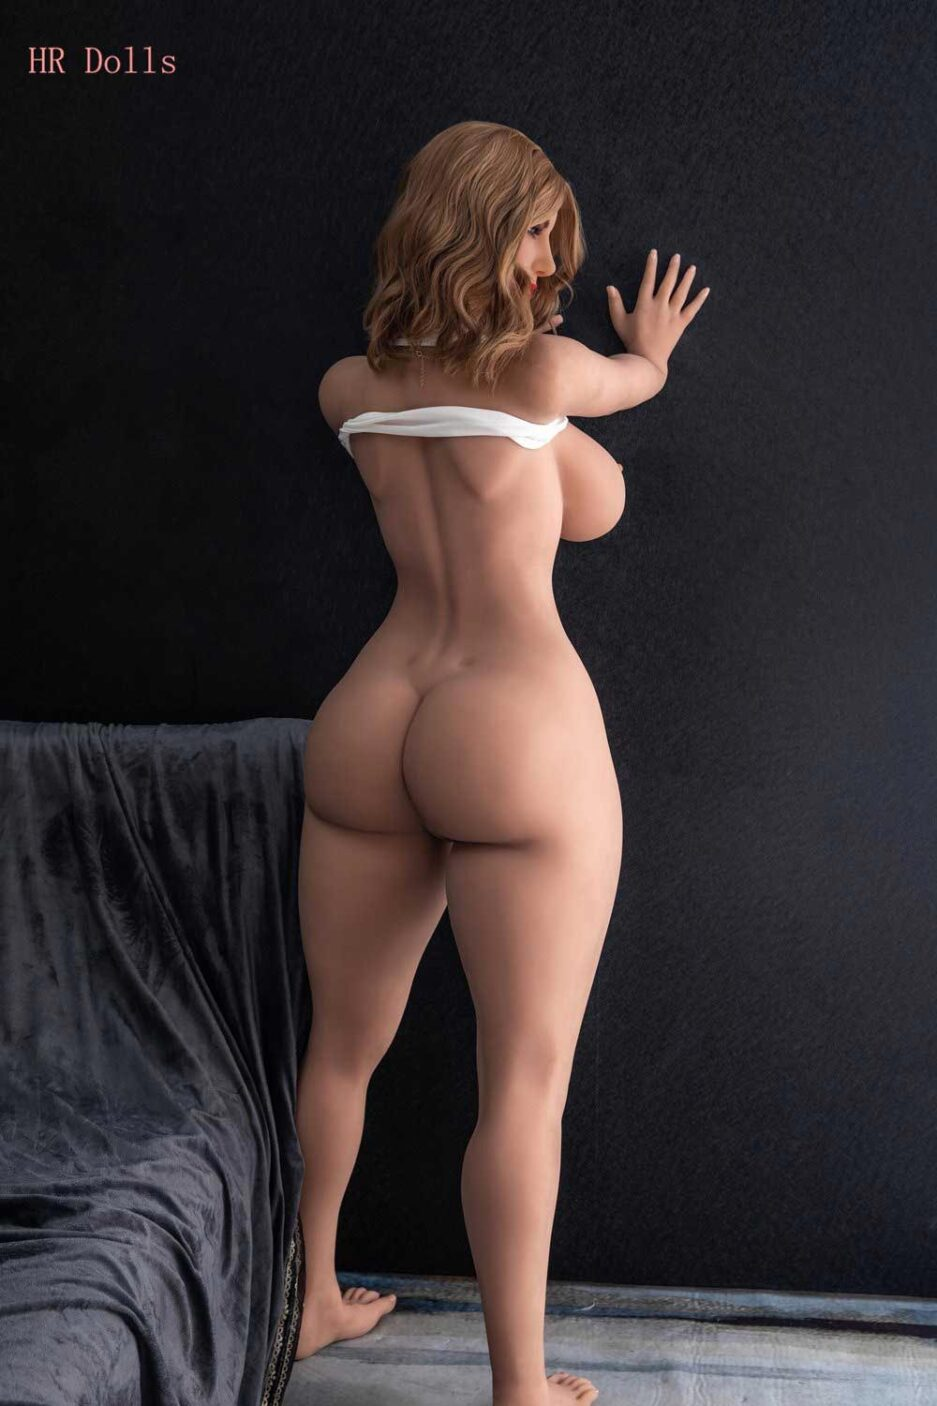 Big ass sex doll with hands on the wall